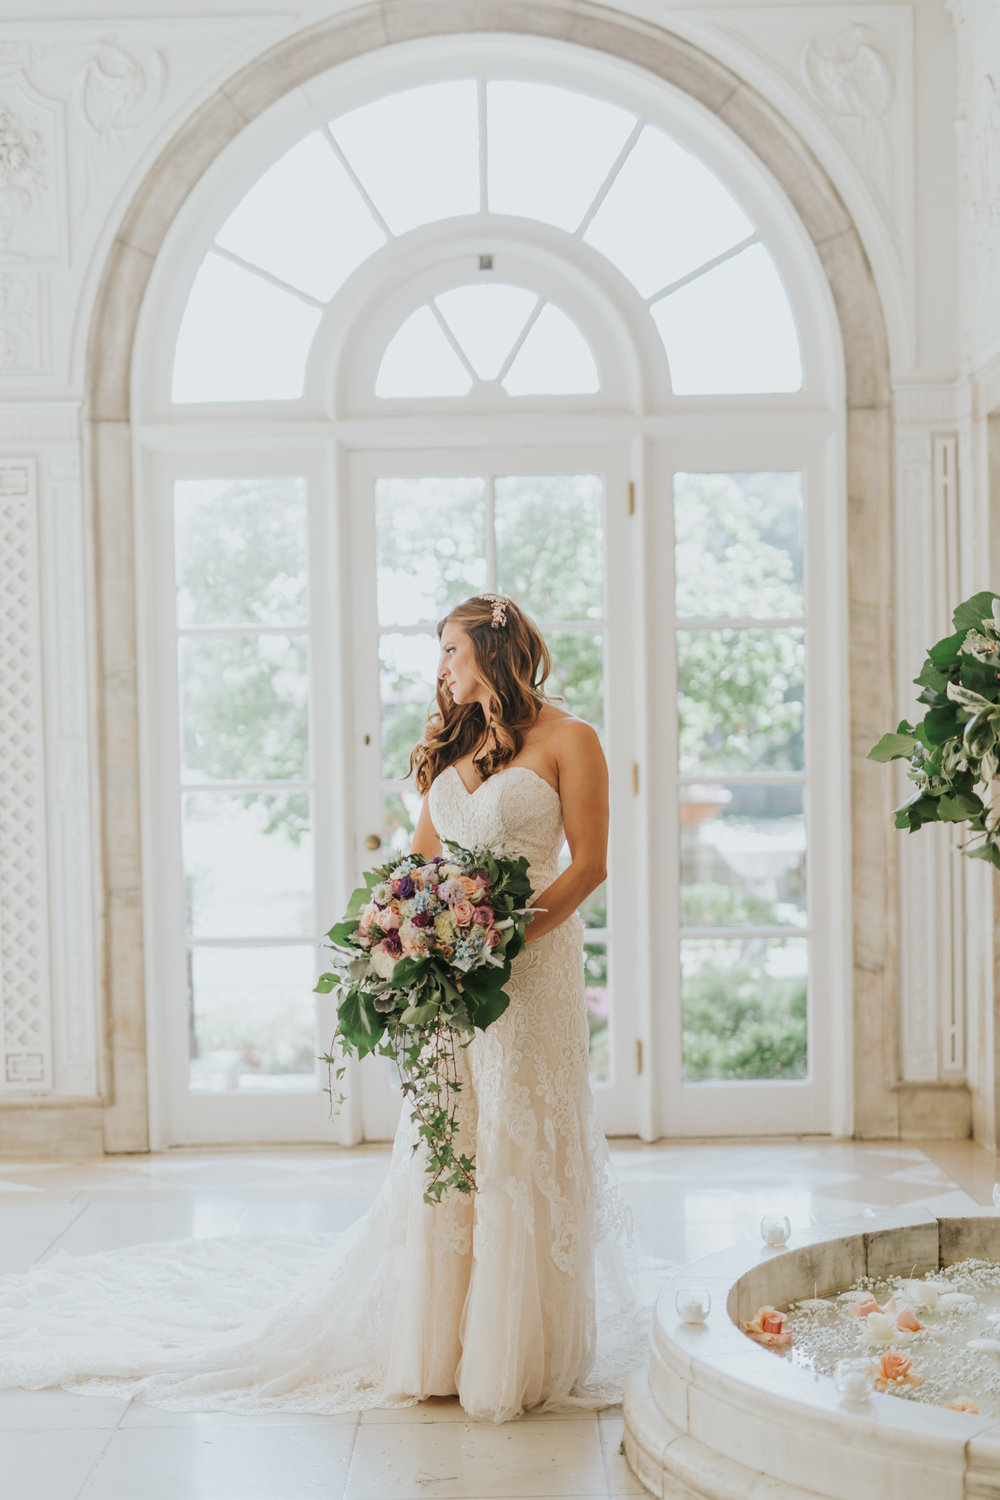 Armor House Wedding_Polly C Photography_20171728171331.jpg